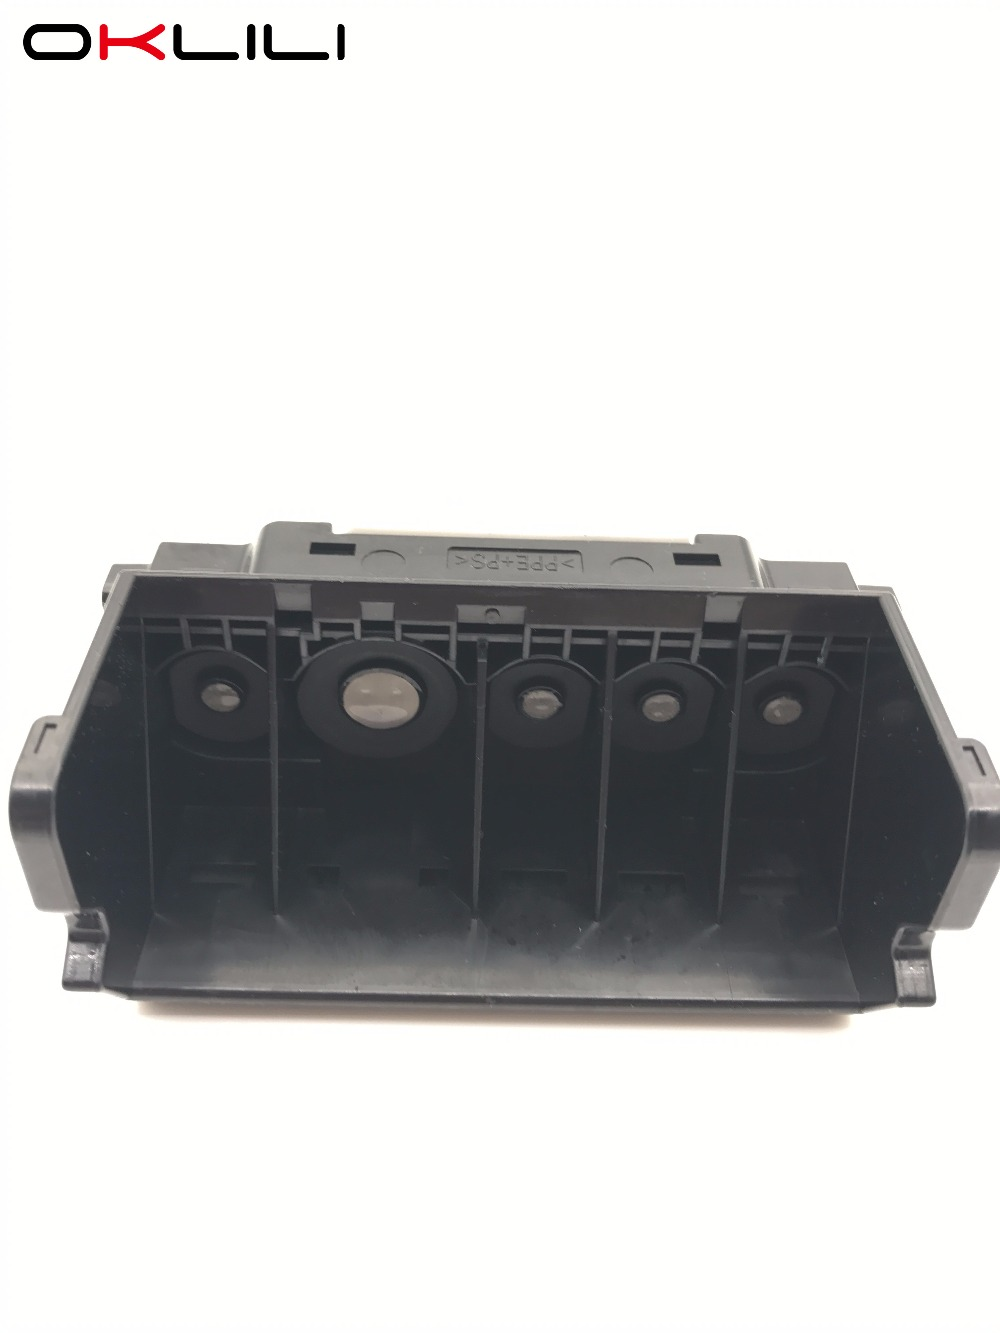 OKLILI QY6-0080 Printhead Print Head Printer for Canon iP4820 iP4850 iX6520 iX6550 MX715 MX885 MG5220 MG5250 MG5320 MG5350 original qy6 0080 print head for canon ip4820 ip4850 ix6520 ix6550 mx715 mx885 mg5220 mg5250 mg5320 mg5340 mg5350 printhead